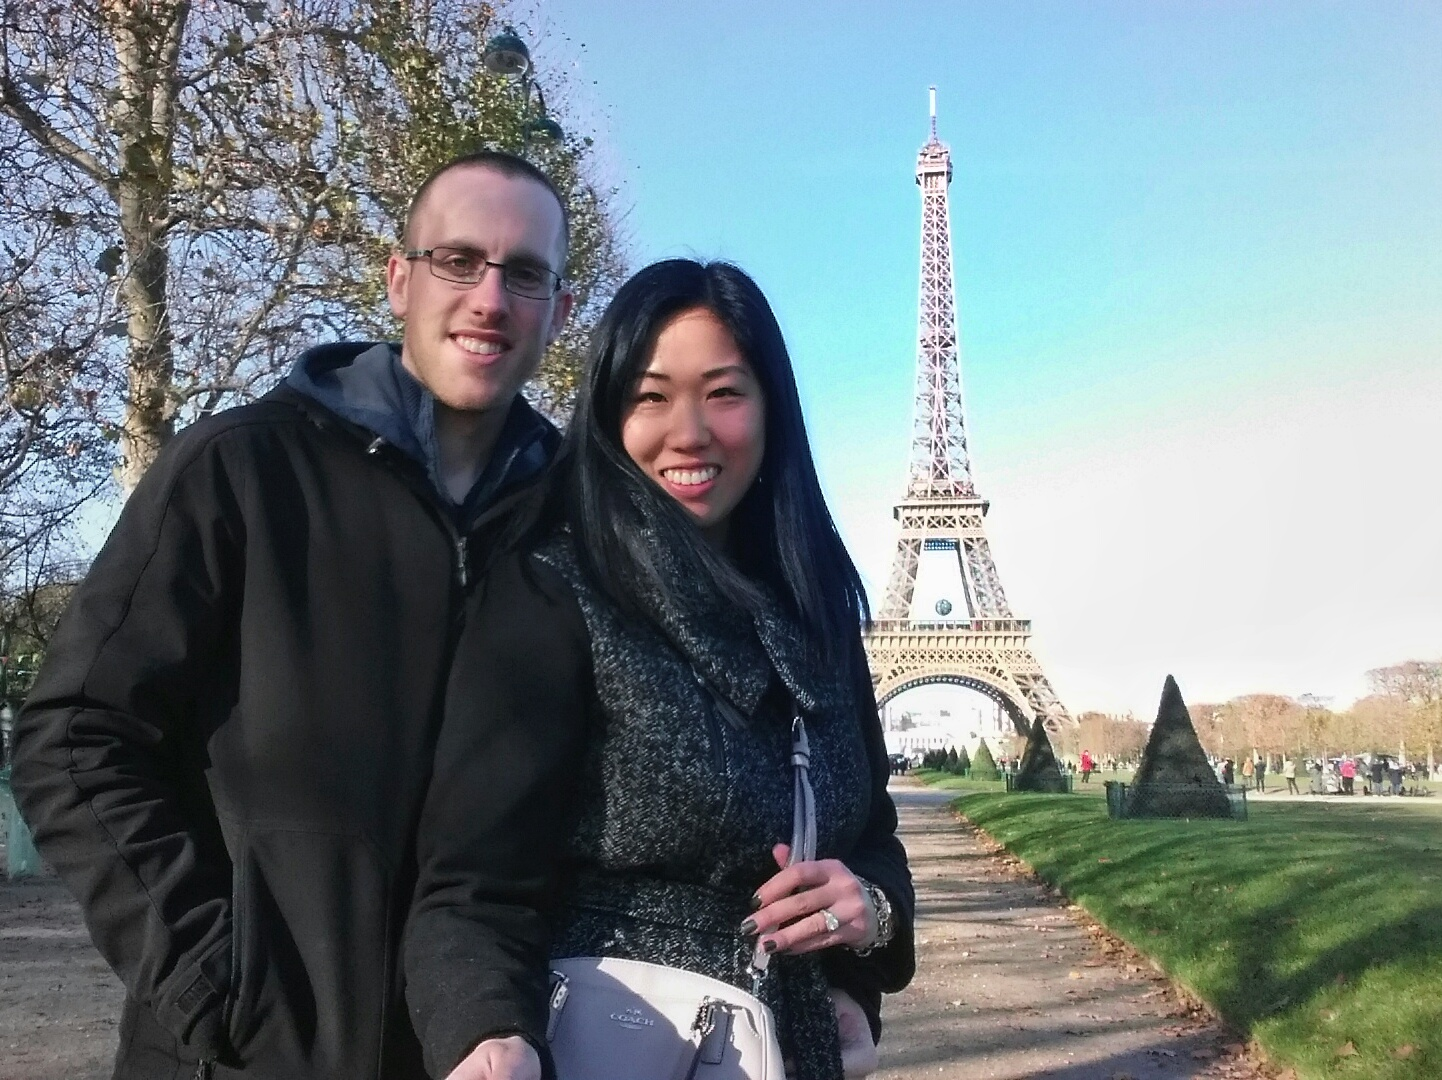 Matt and Aimee in front of Eiffel Tower in Paris, France